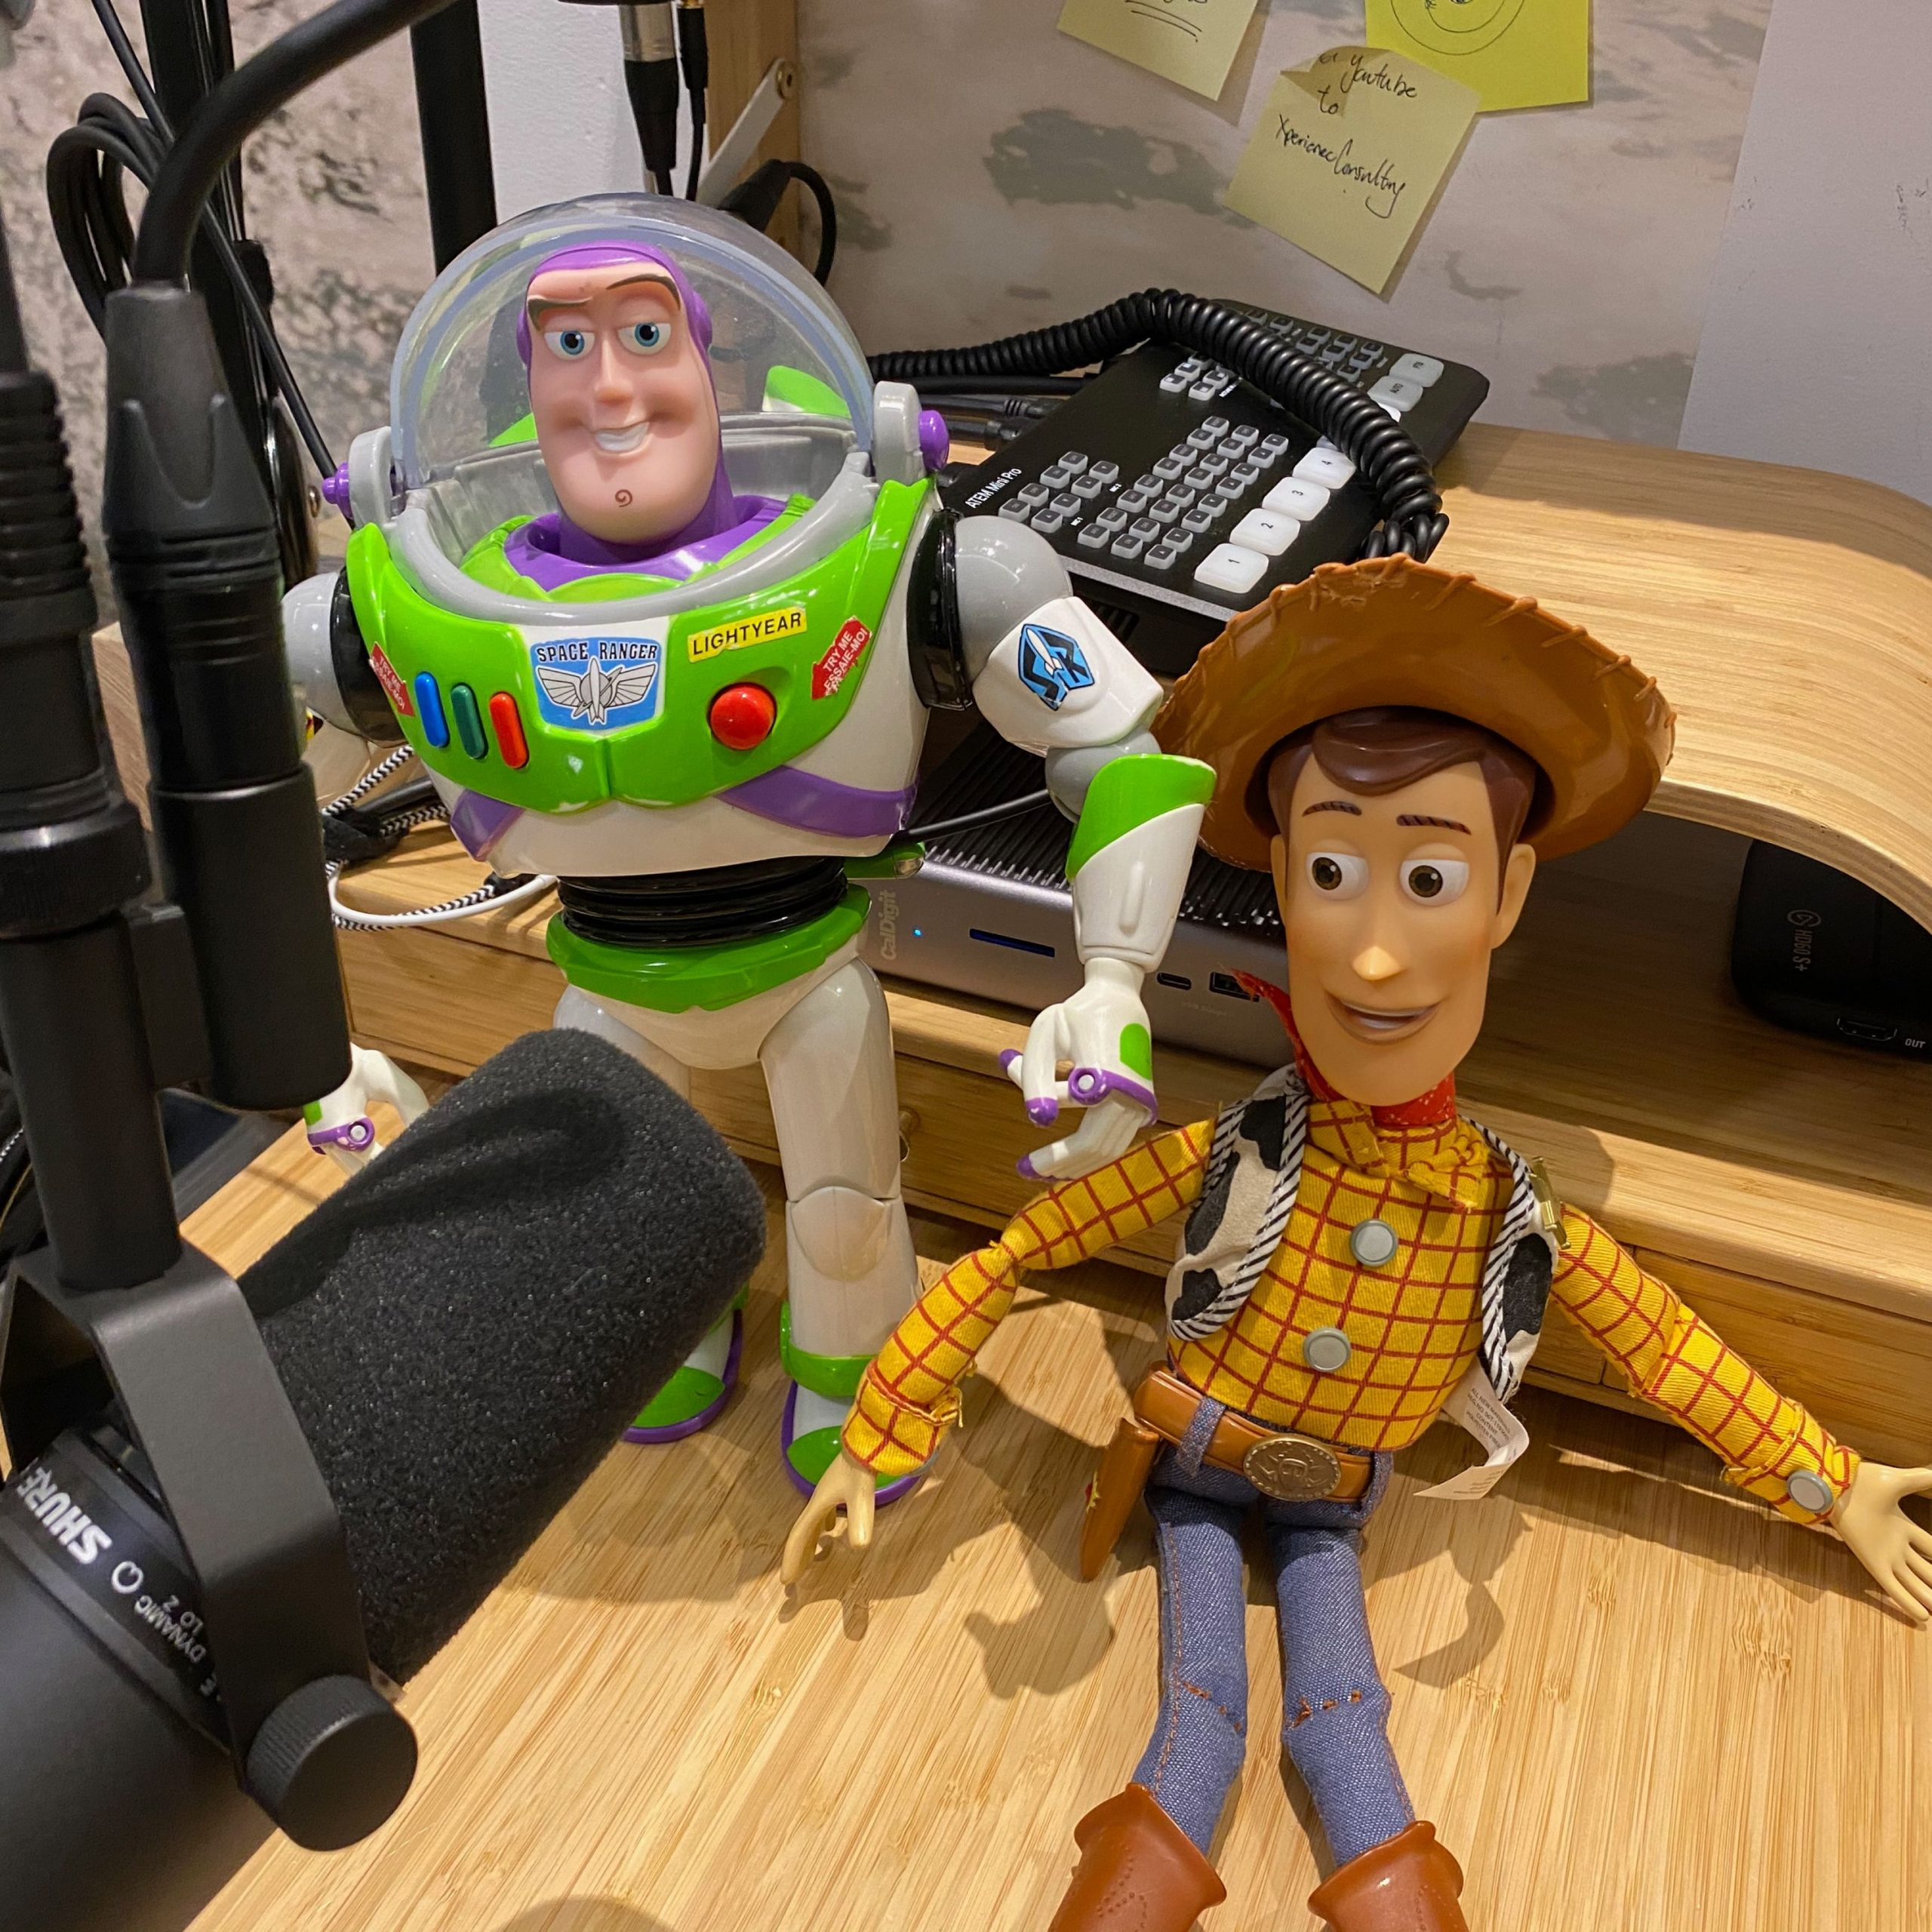 #397 Cleaning Buzz and Woody